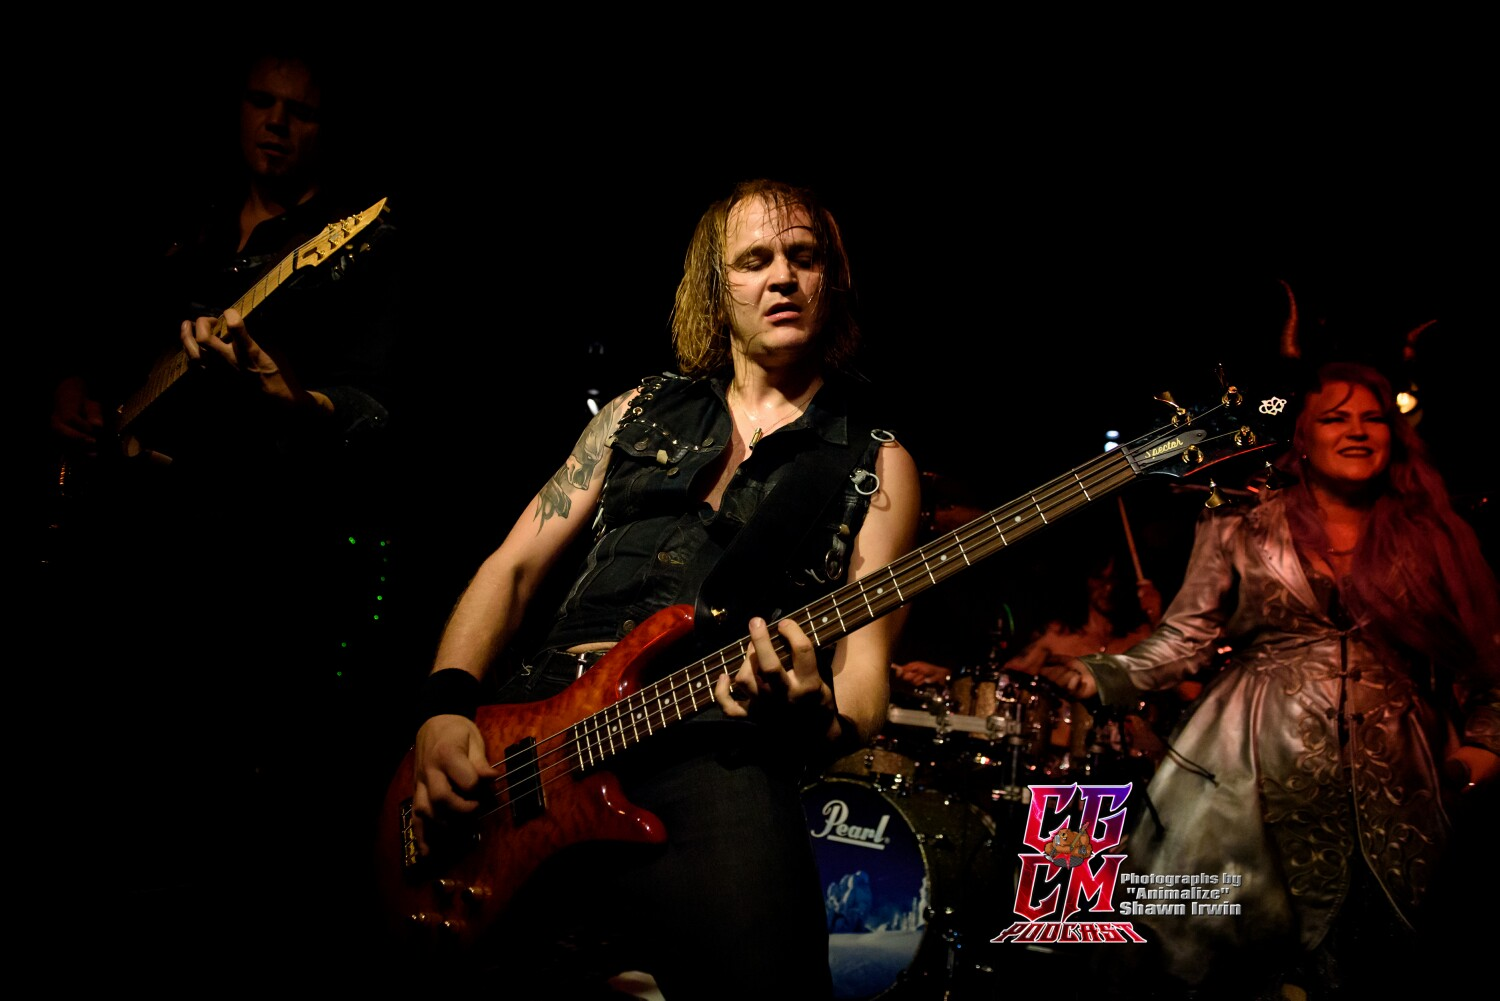 Battle Beast Photos CGCM LOGO Shawn Irwin (20 Of 34)